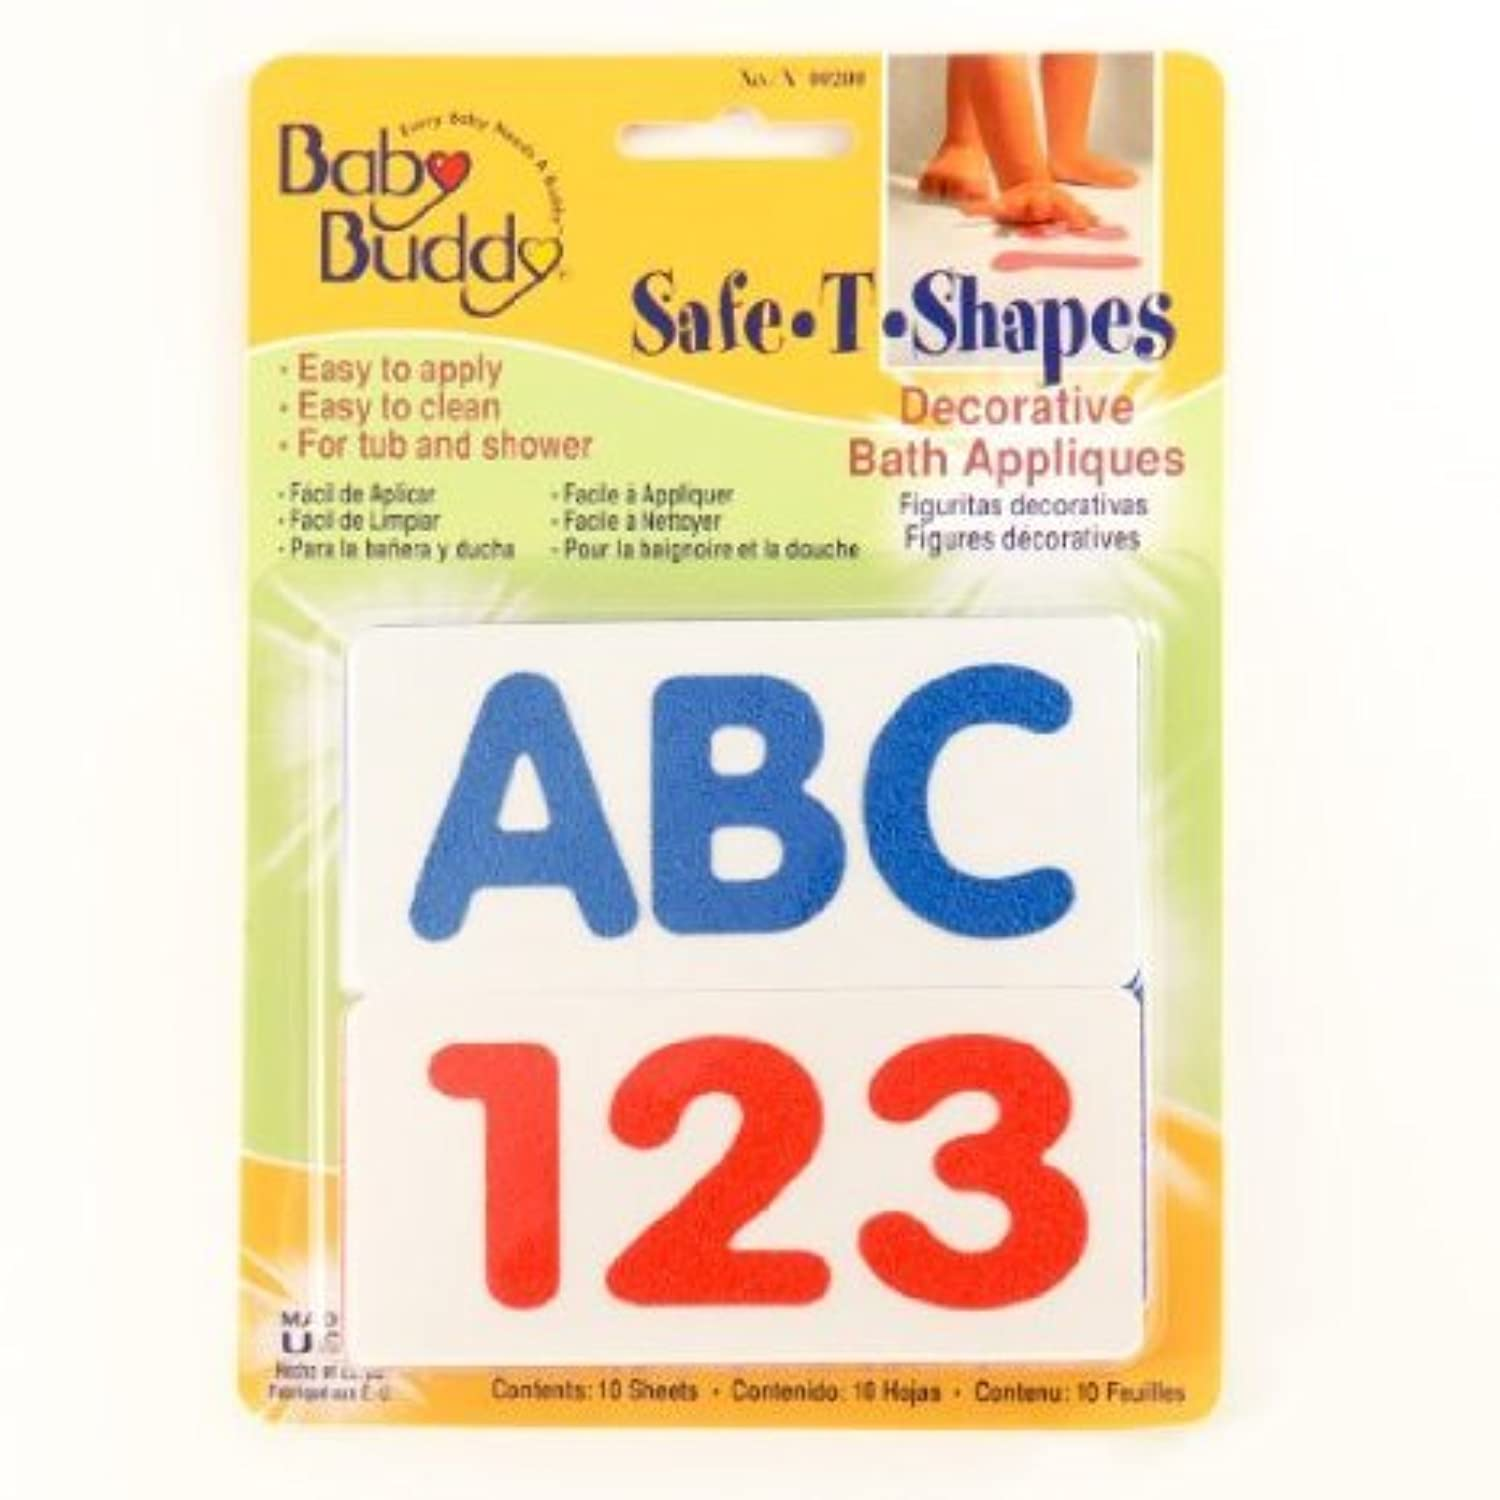 Baby Buddy BB Safe-T-Shapes Bath Appliques - ABC123 Case Pack 18 おもちゃ (並行輸入)